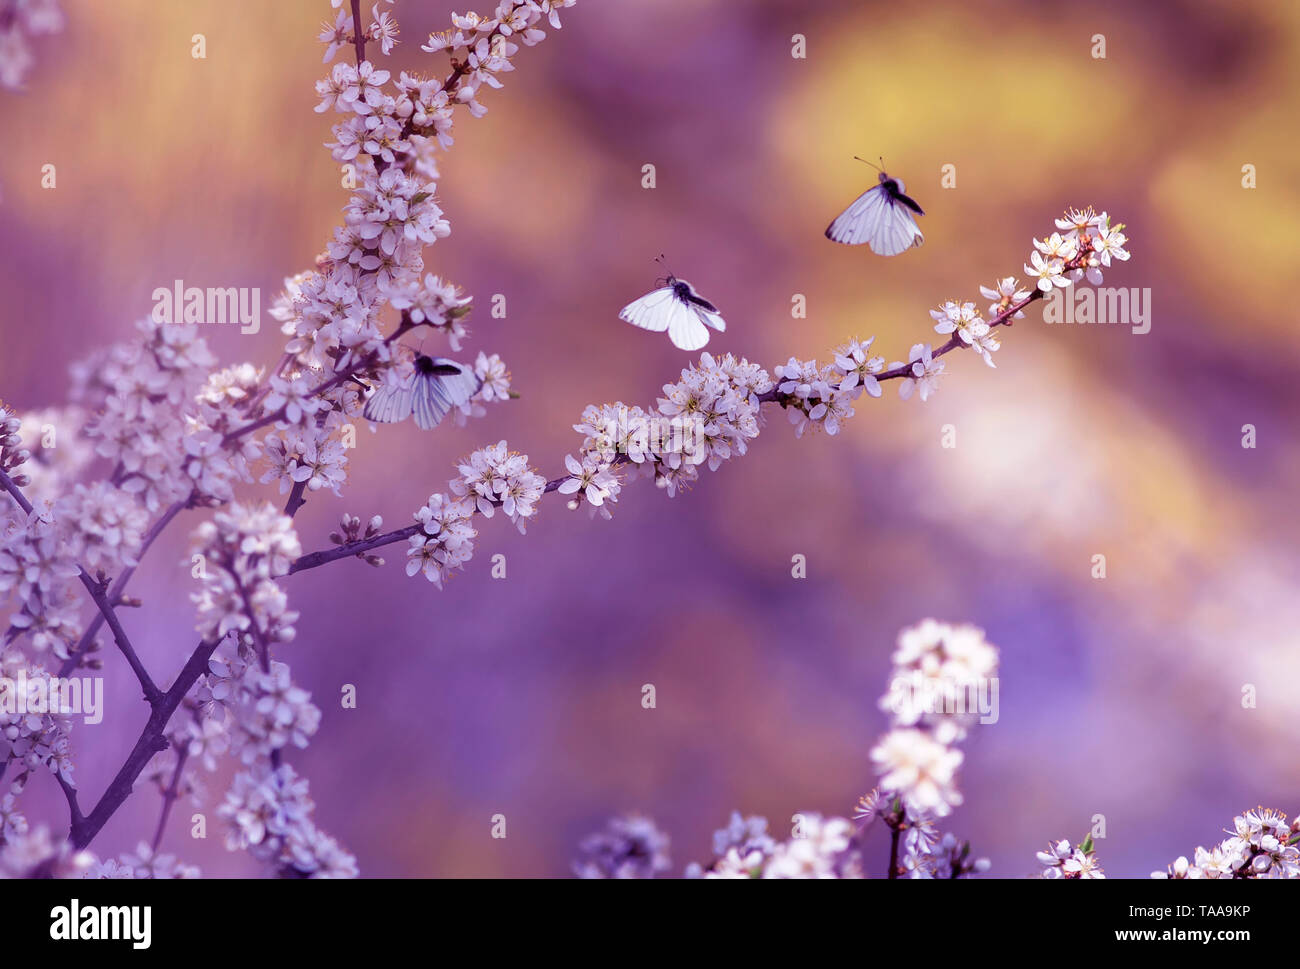 three white beautiful little butterflies fly to the branches with fluffy fragrant flowers and shrub buds blossoming in May warm sunny garden - Stock Image